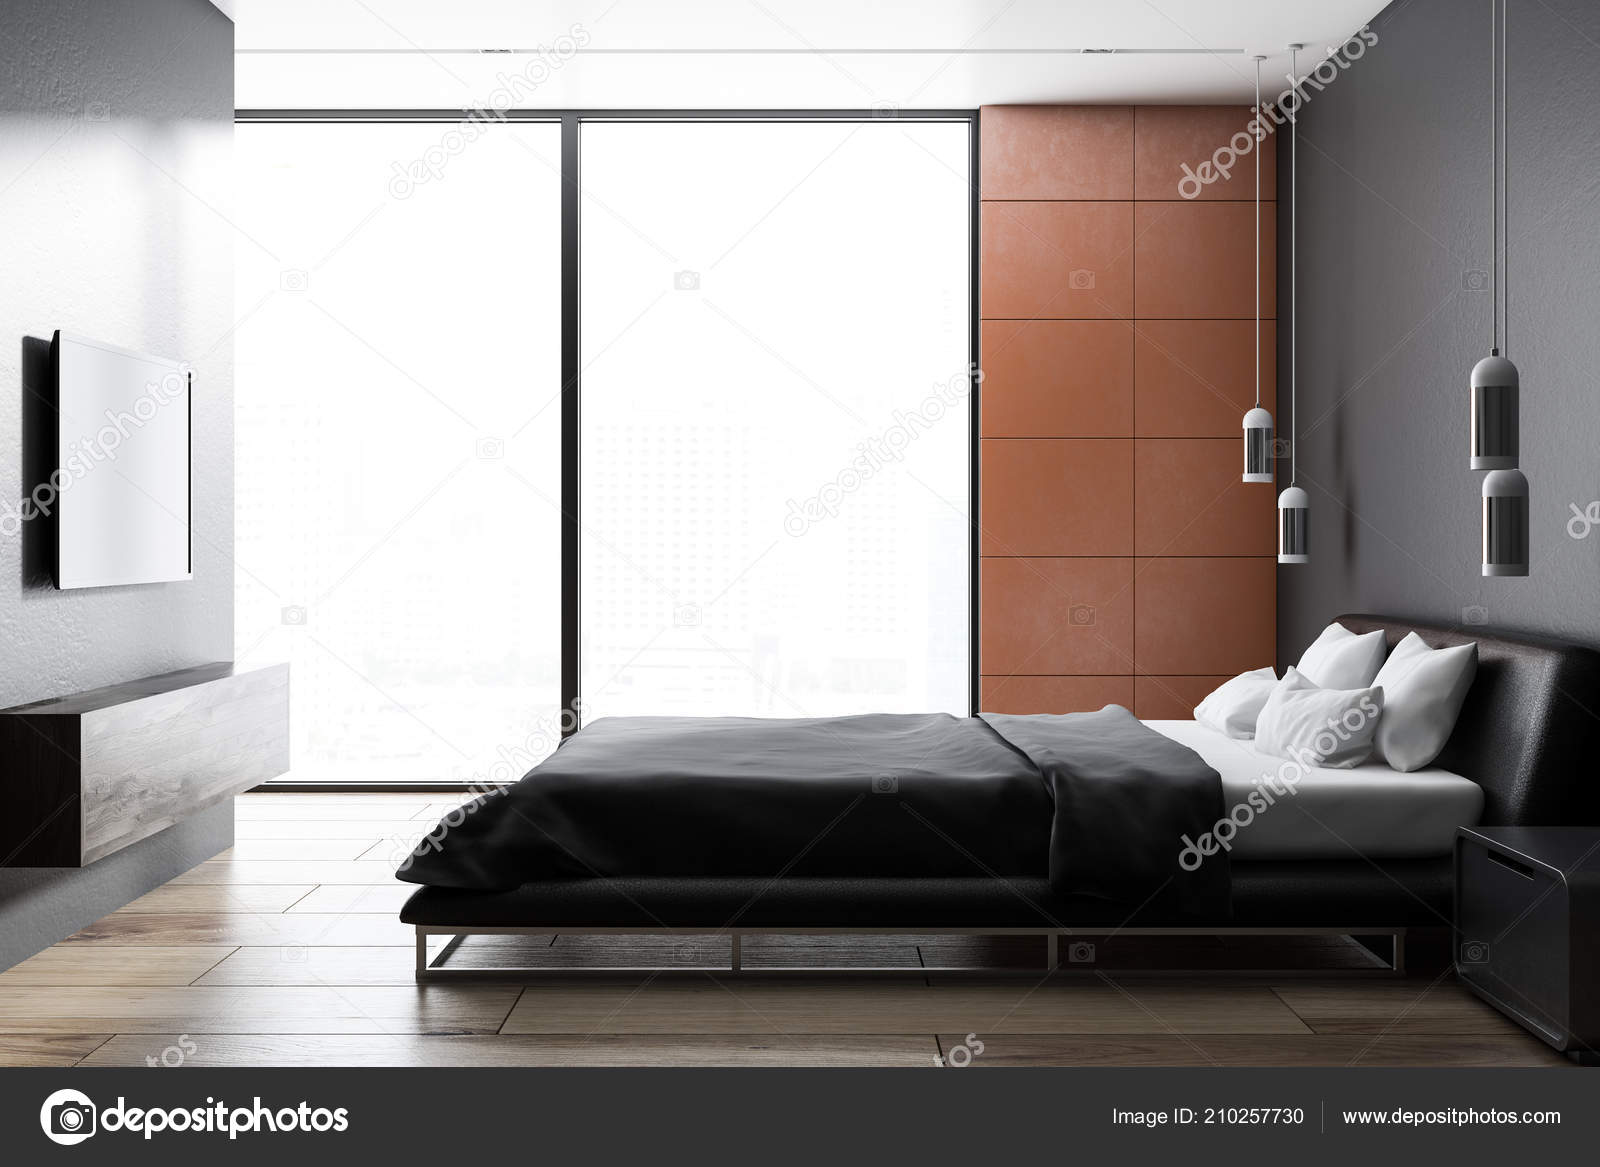 Bedroom floor tiles design ideas | Modern Bedroom Interior ...